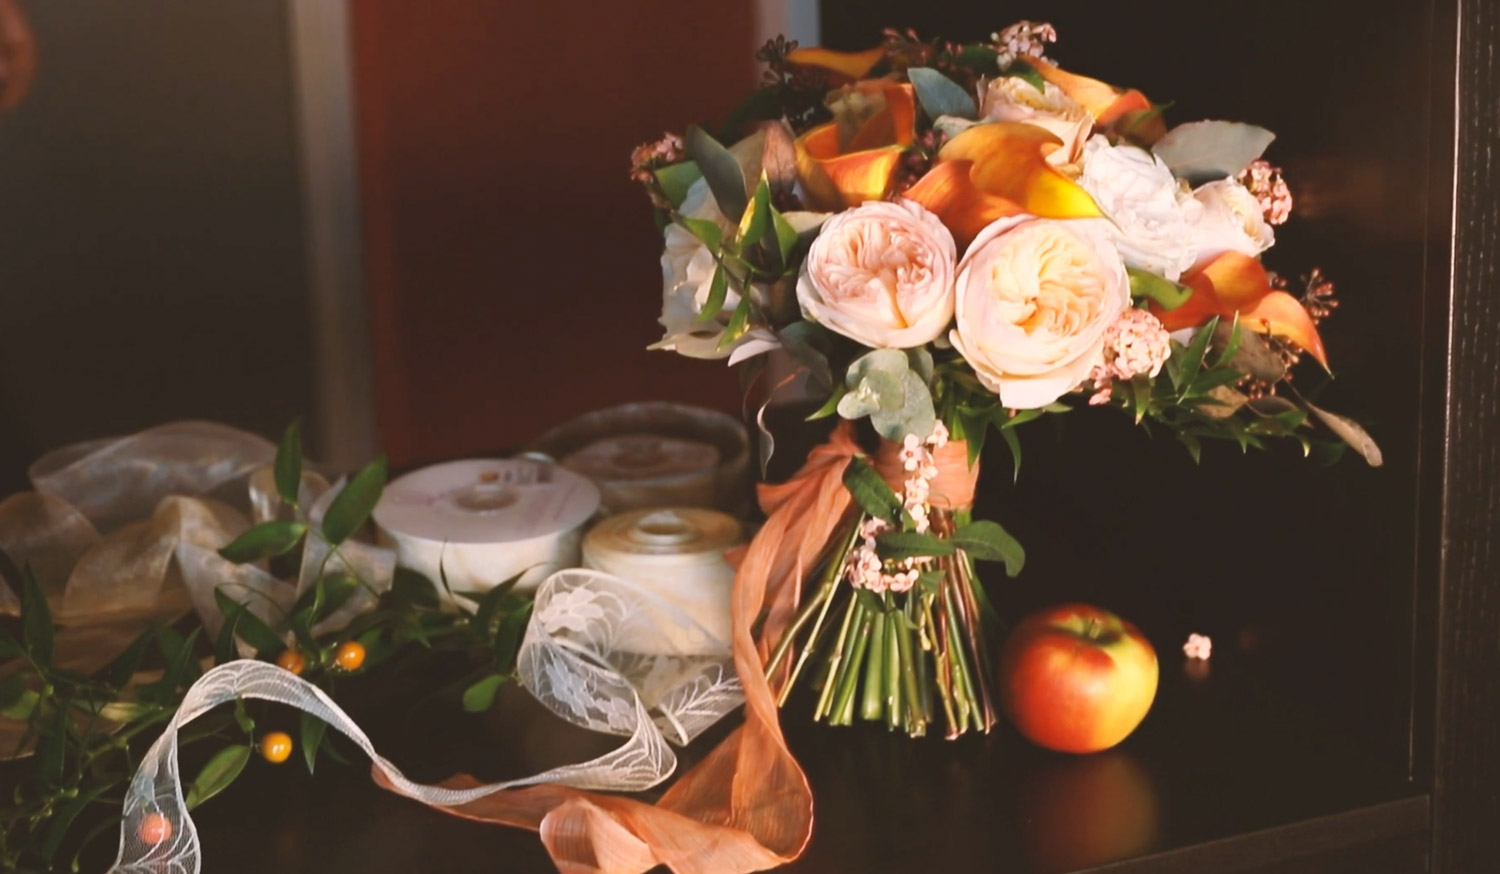 autumn colours bridal bouquet is on the table with apple and laces.